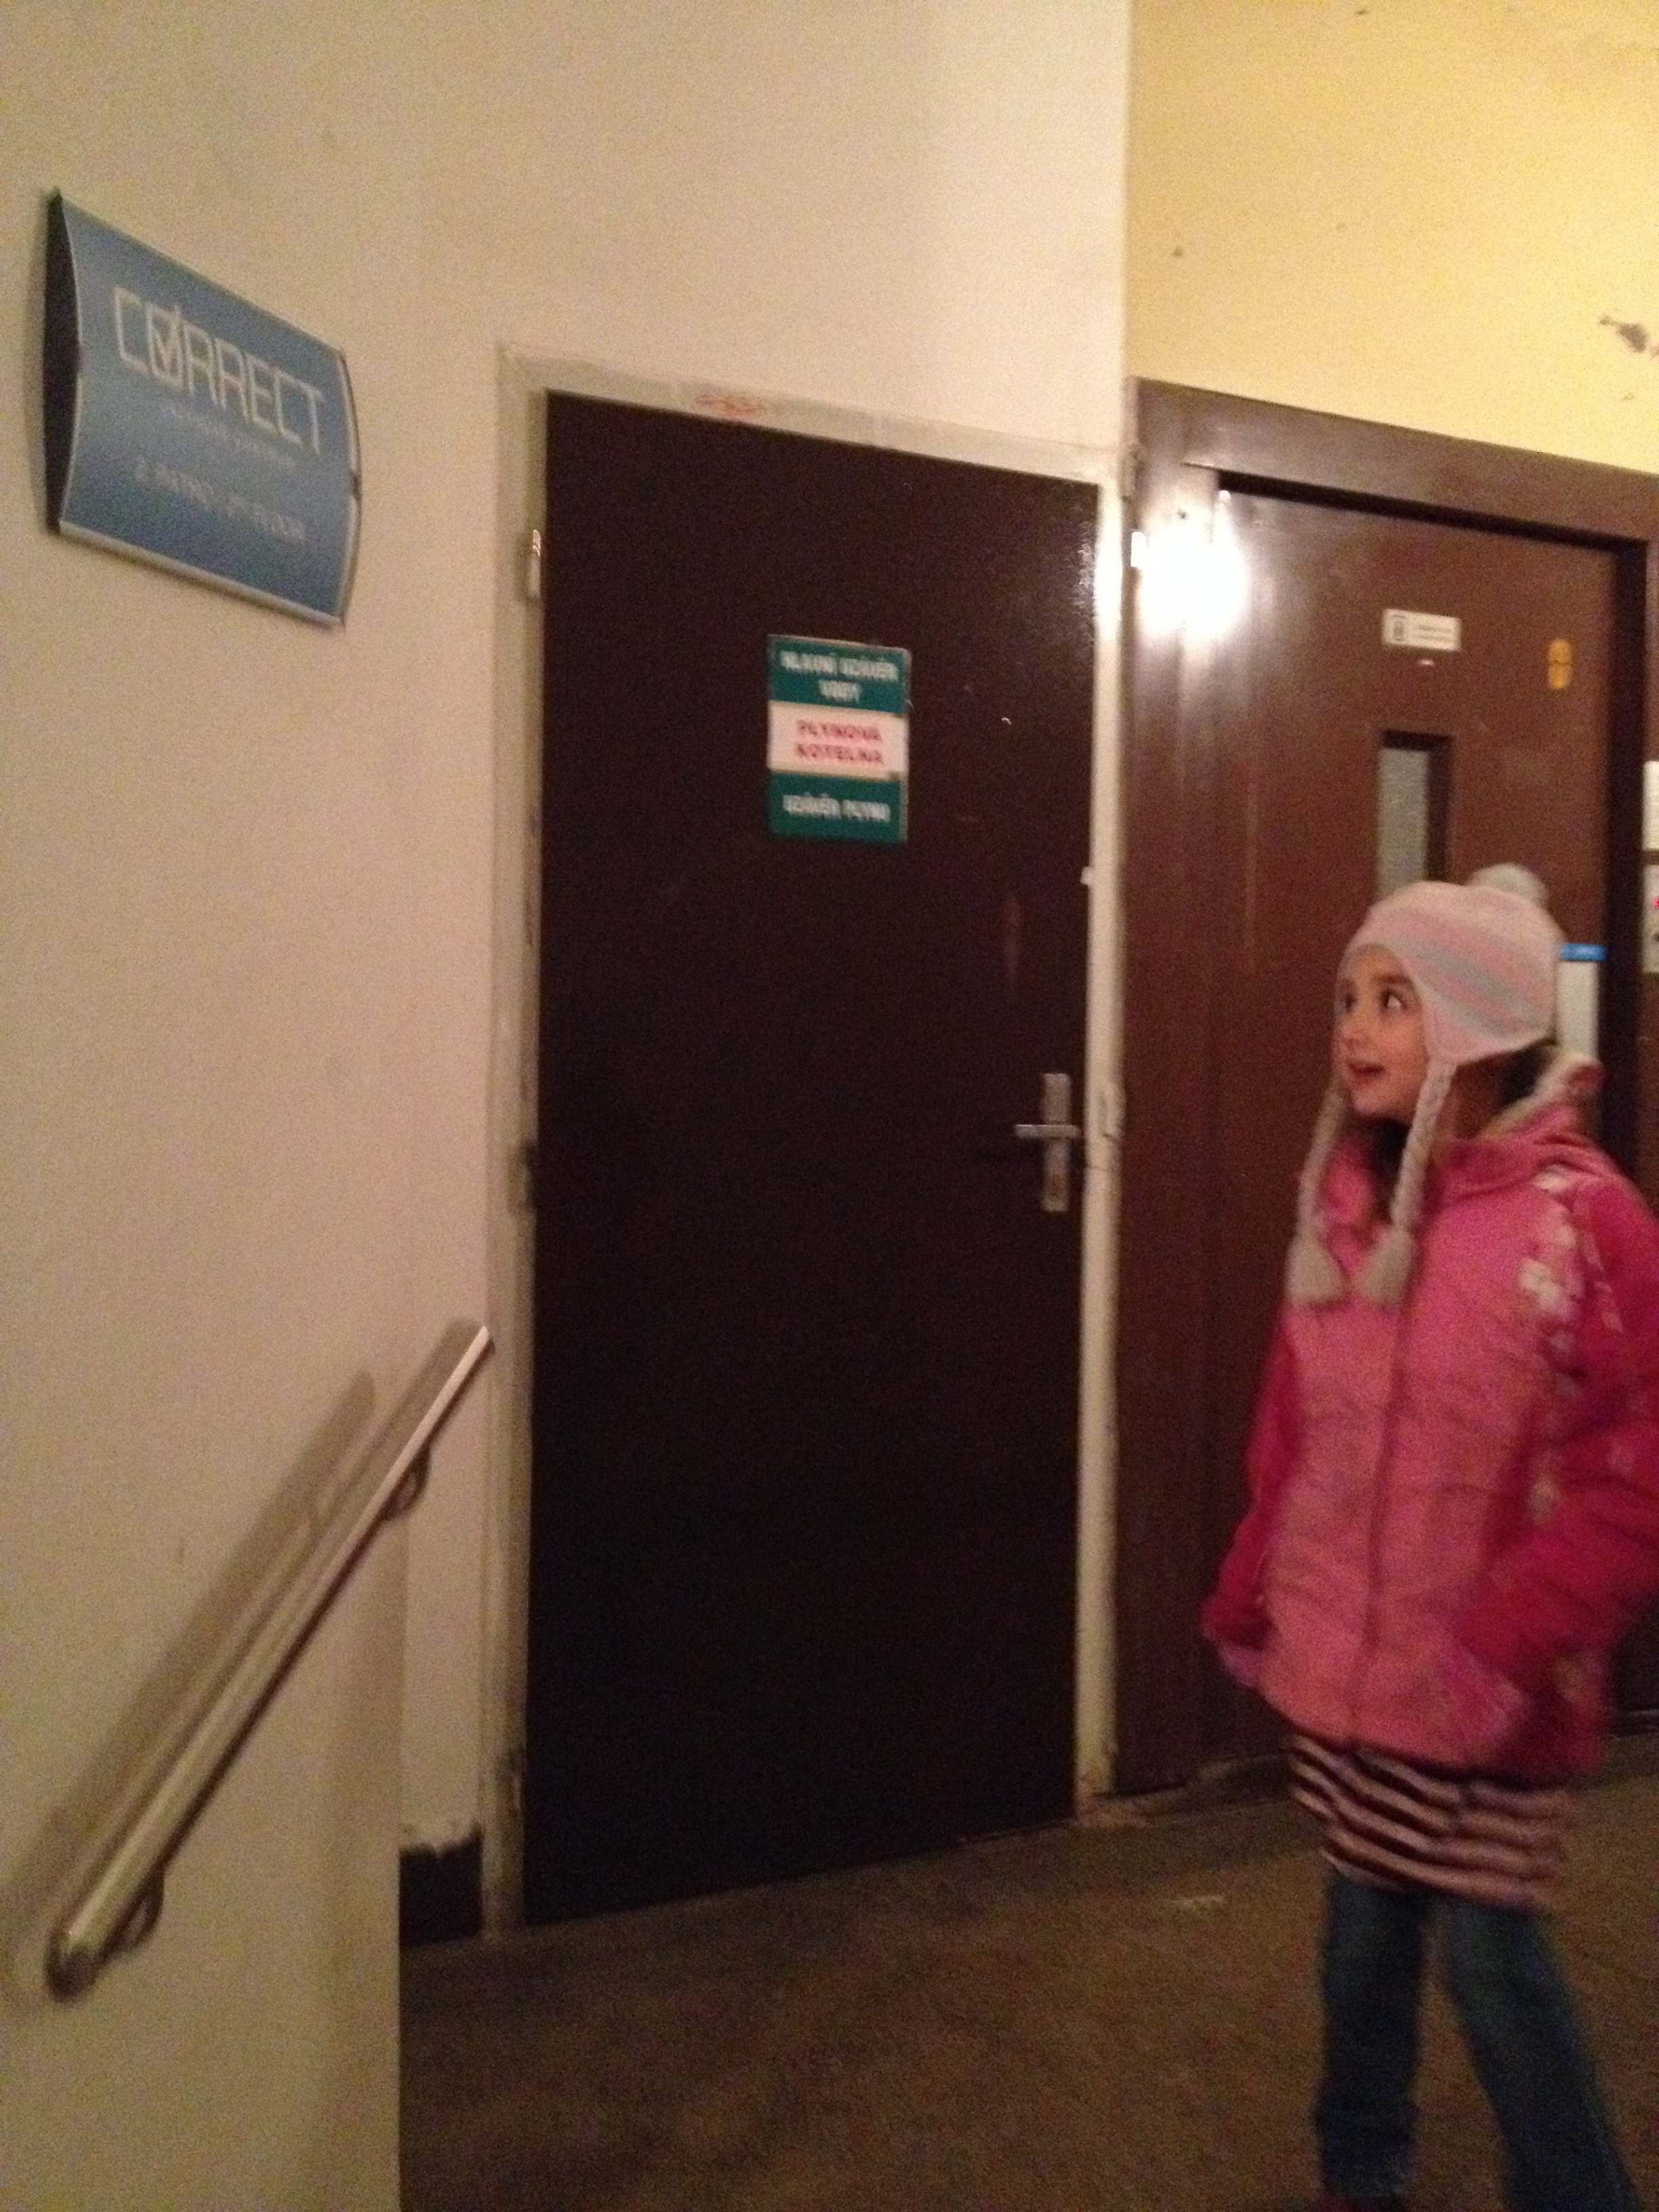 """Our school is called """"Correct"""" and is located in a typical, old and, well, fairly dingy building in the square. Here Hannah is glancing at the sign."""